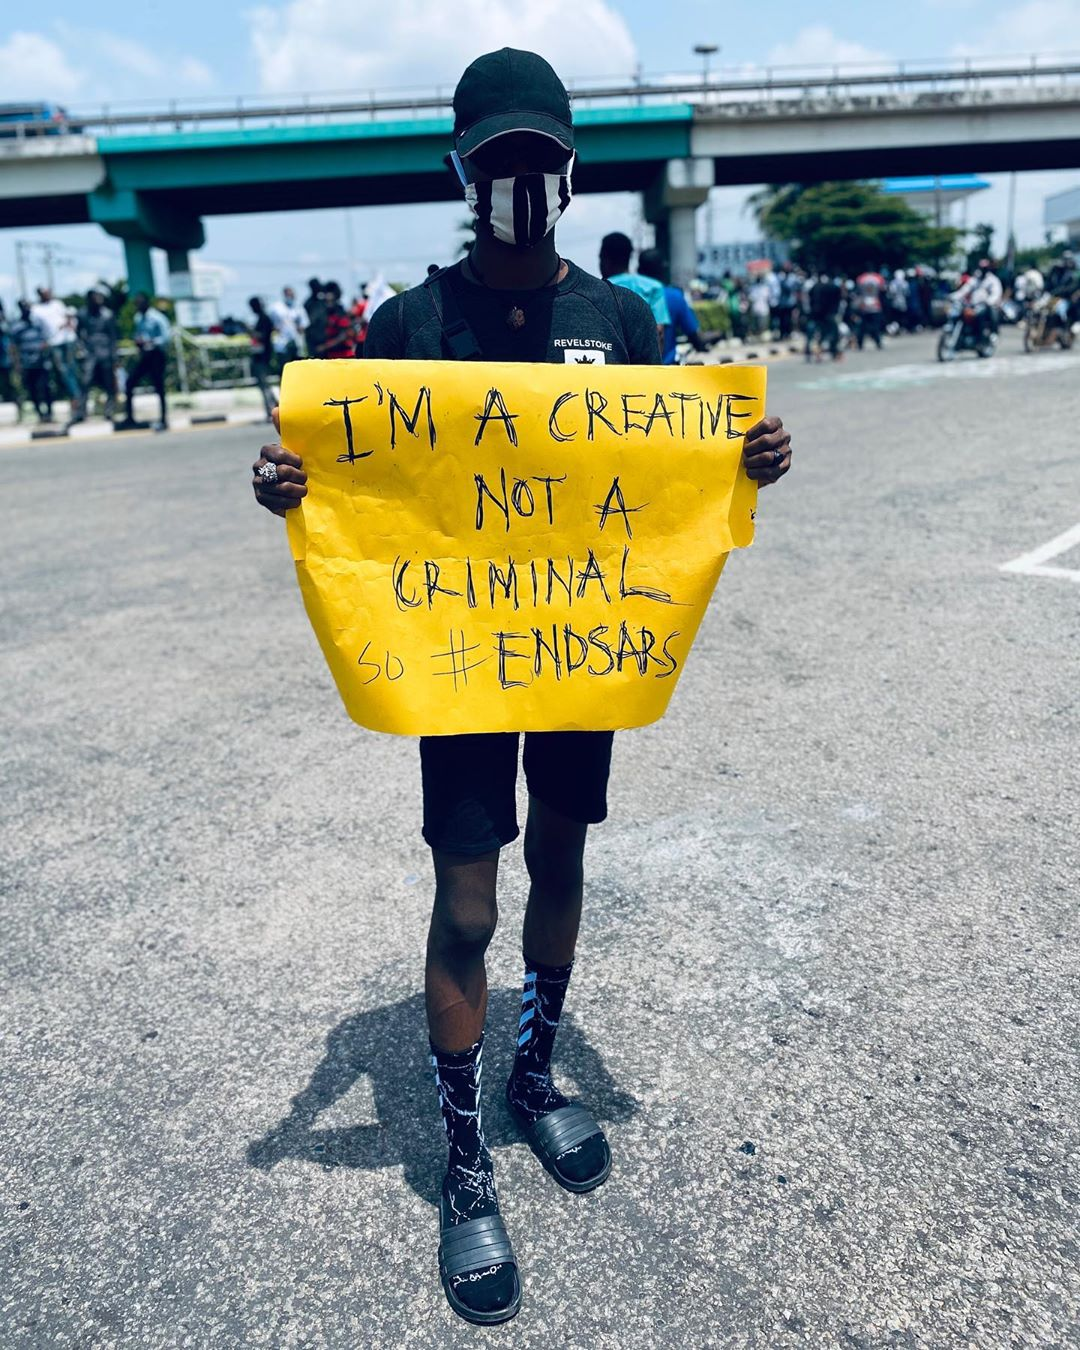 END SARS IN LAGOS